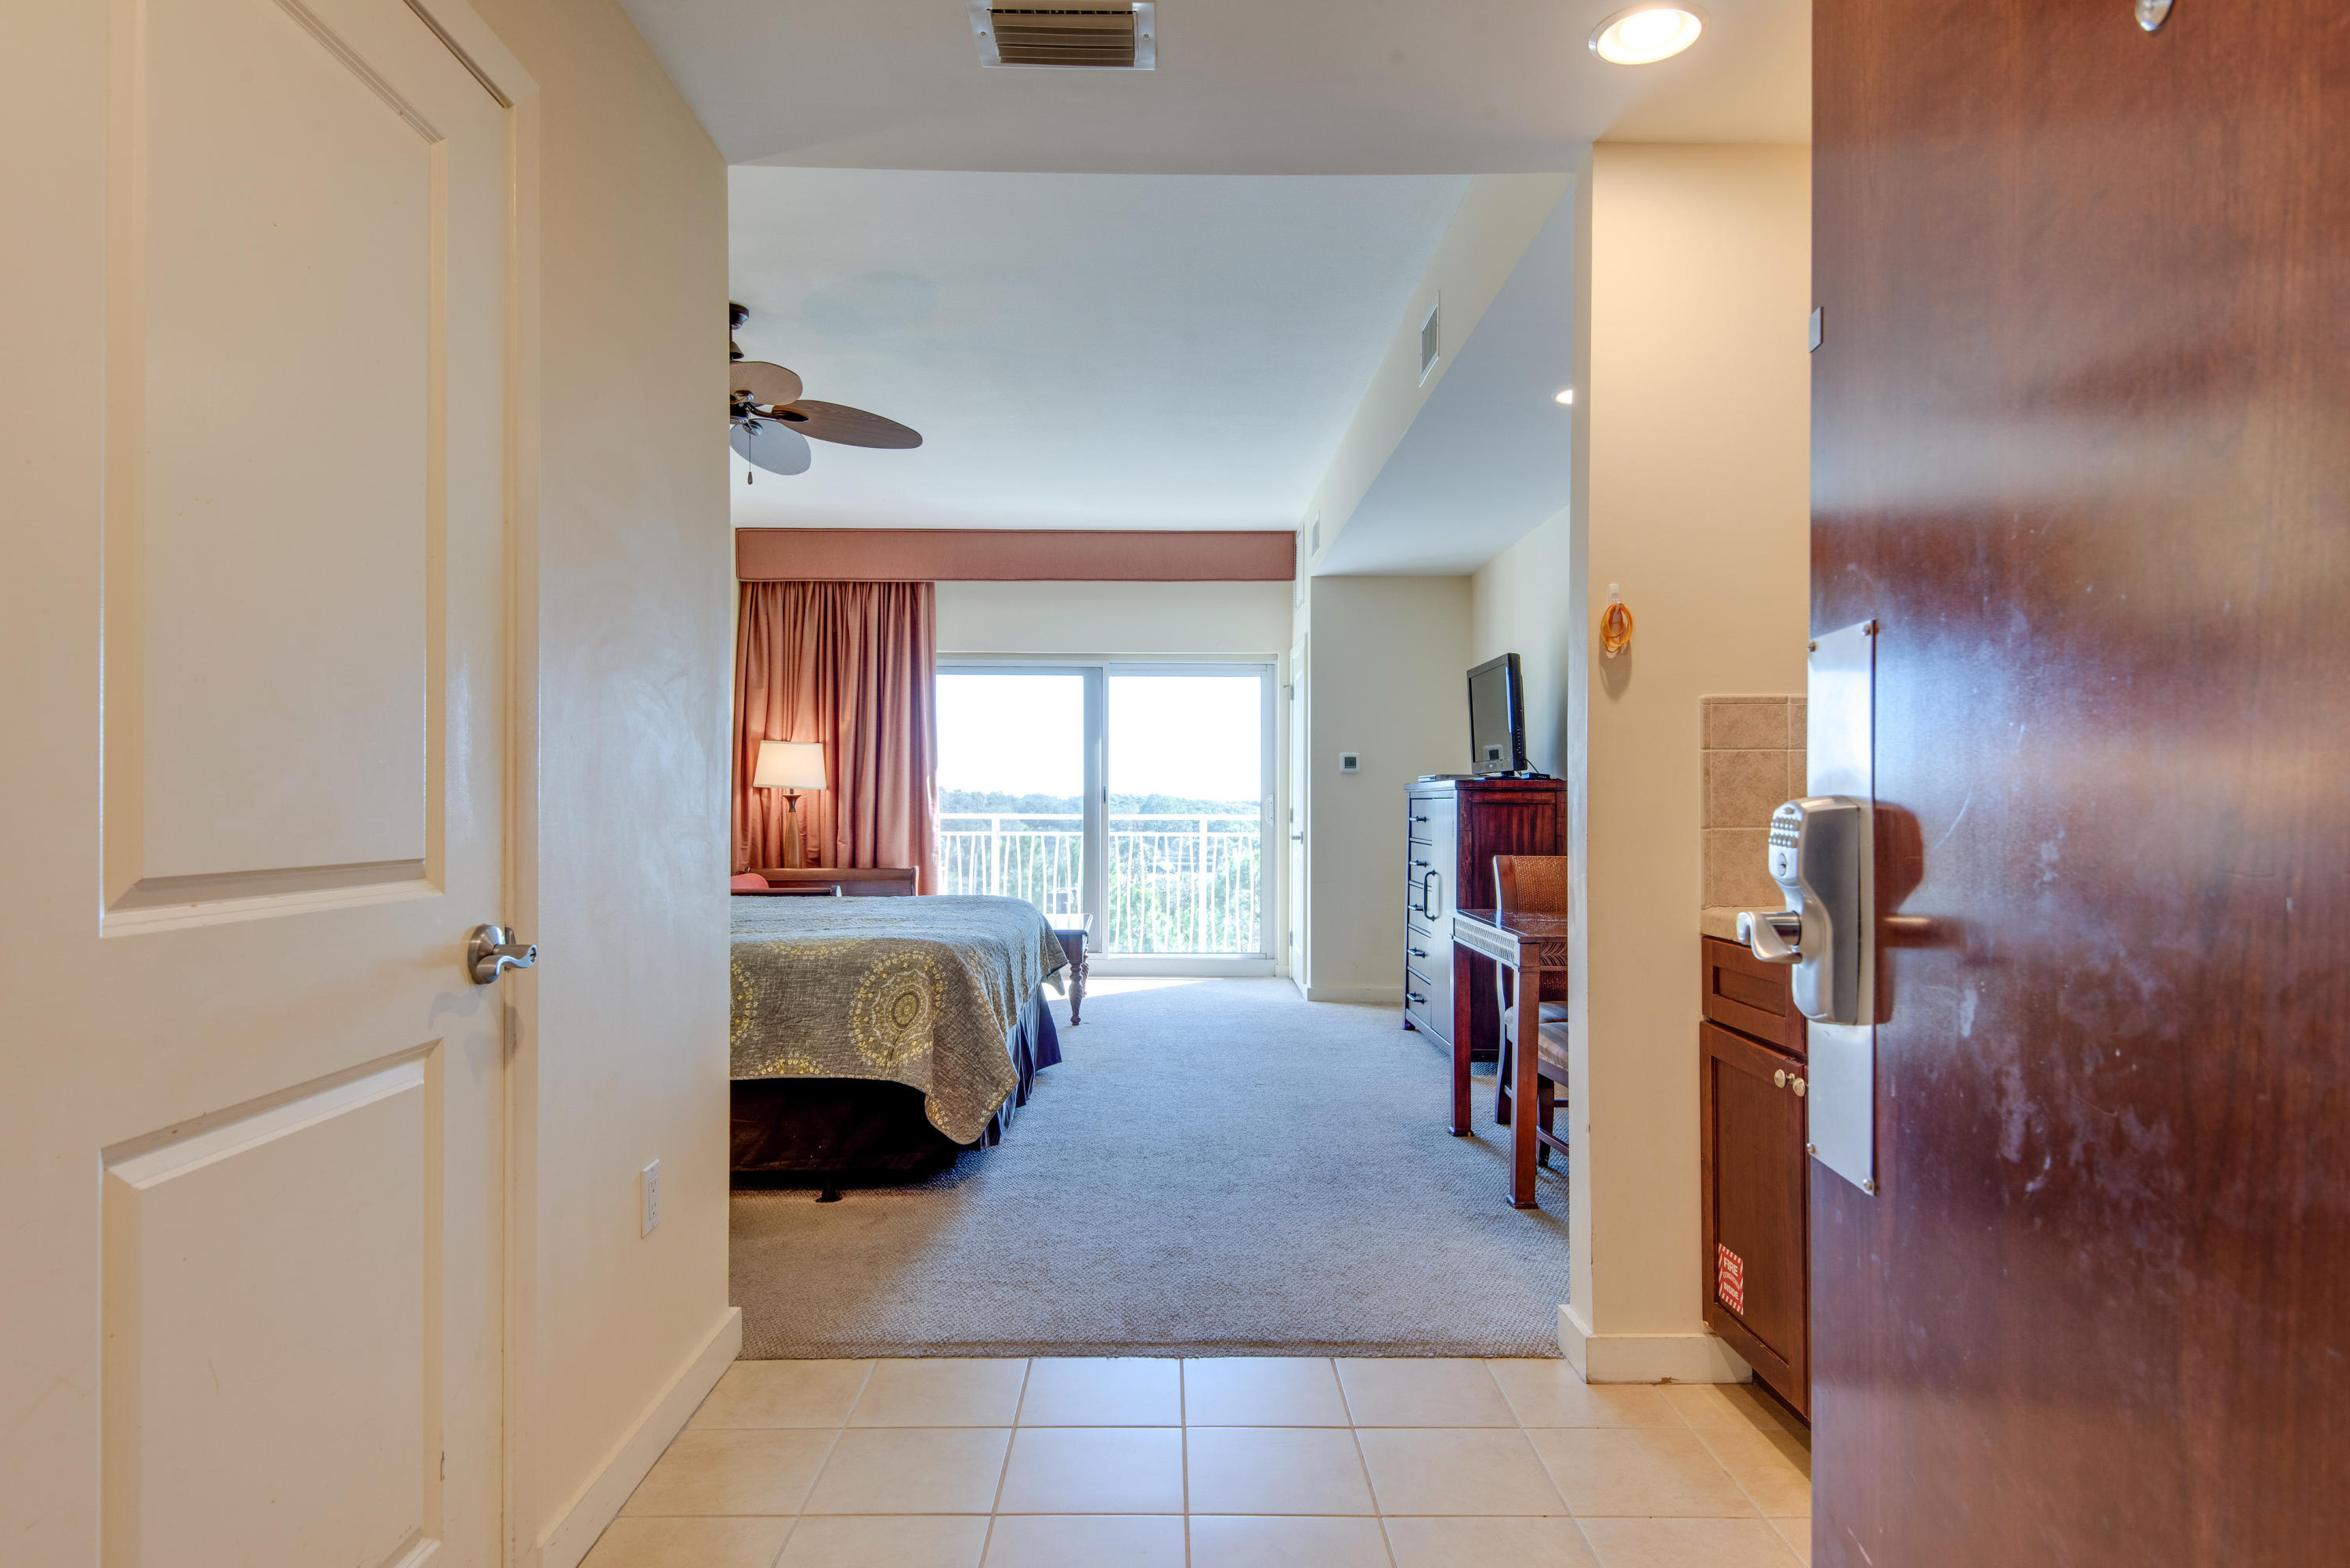 Located on the 3rd floor, this fully furnished studio condo features a kitchenette including a micro